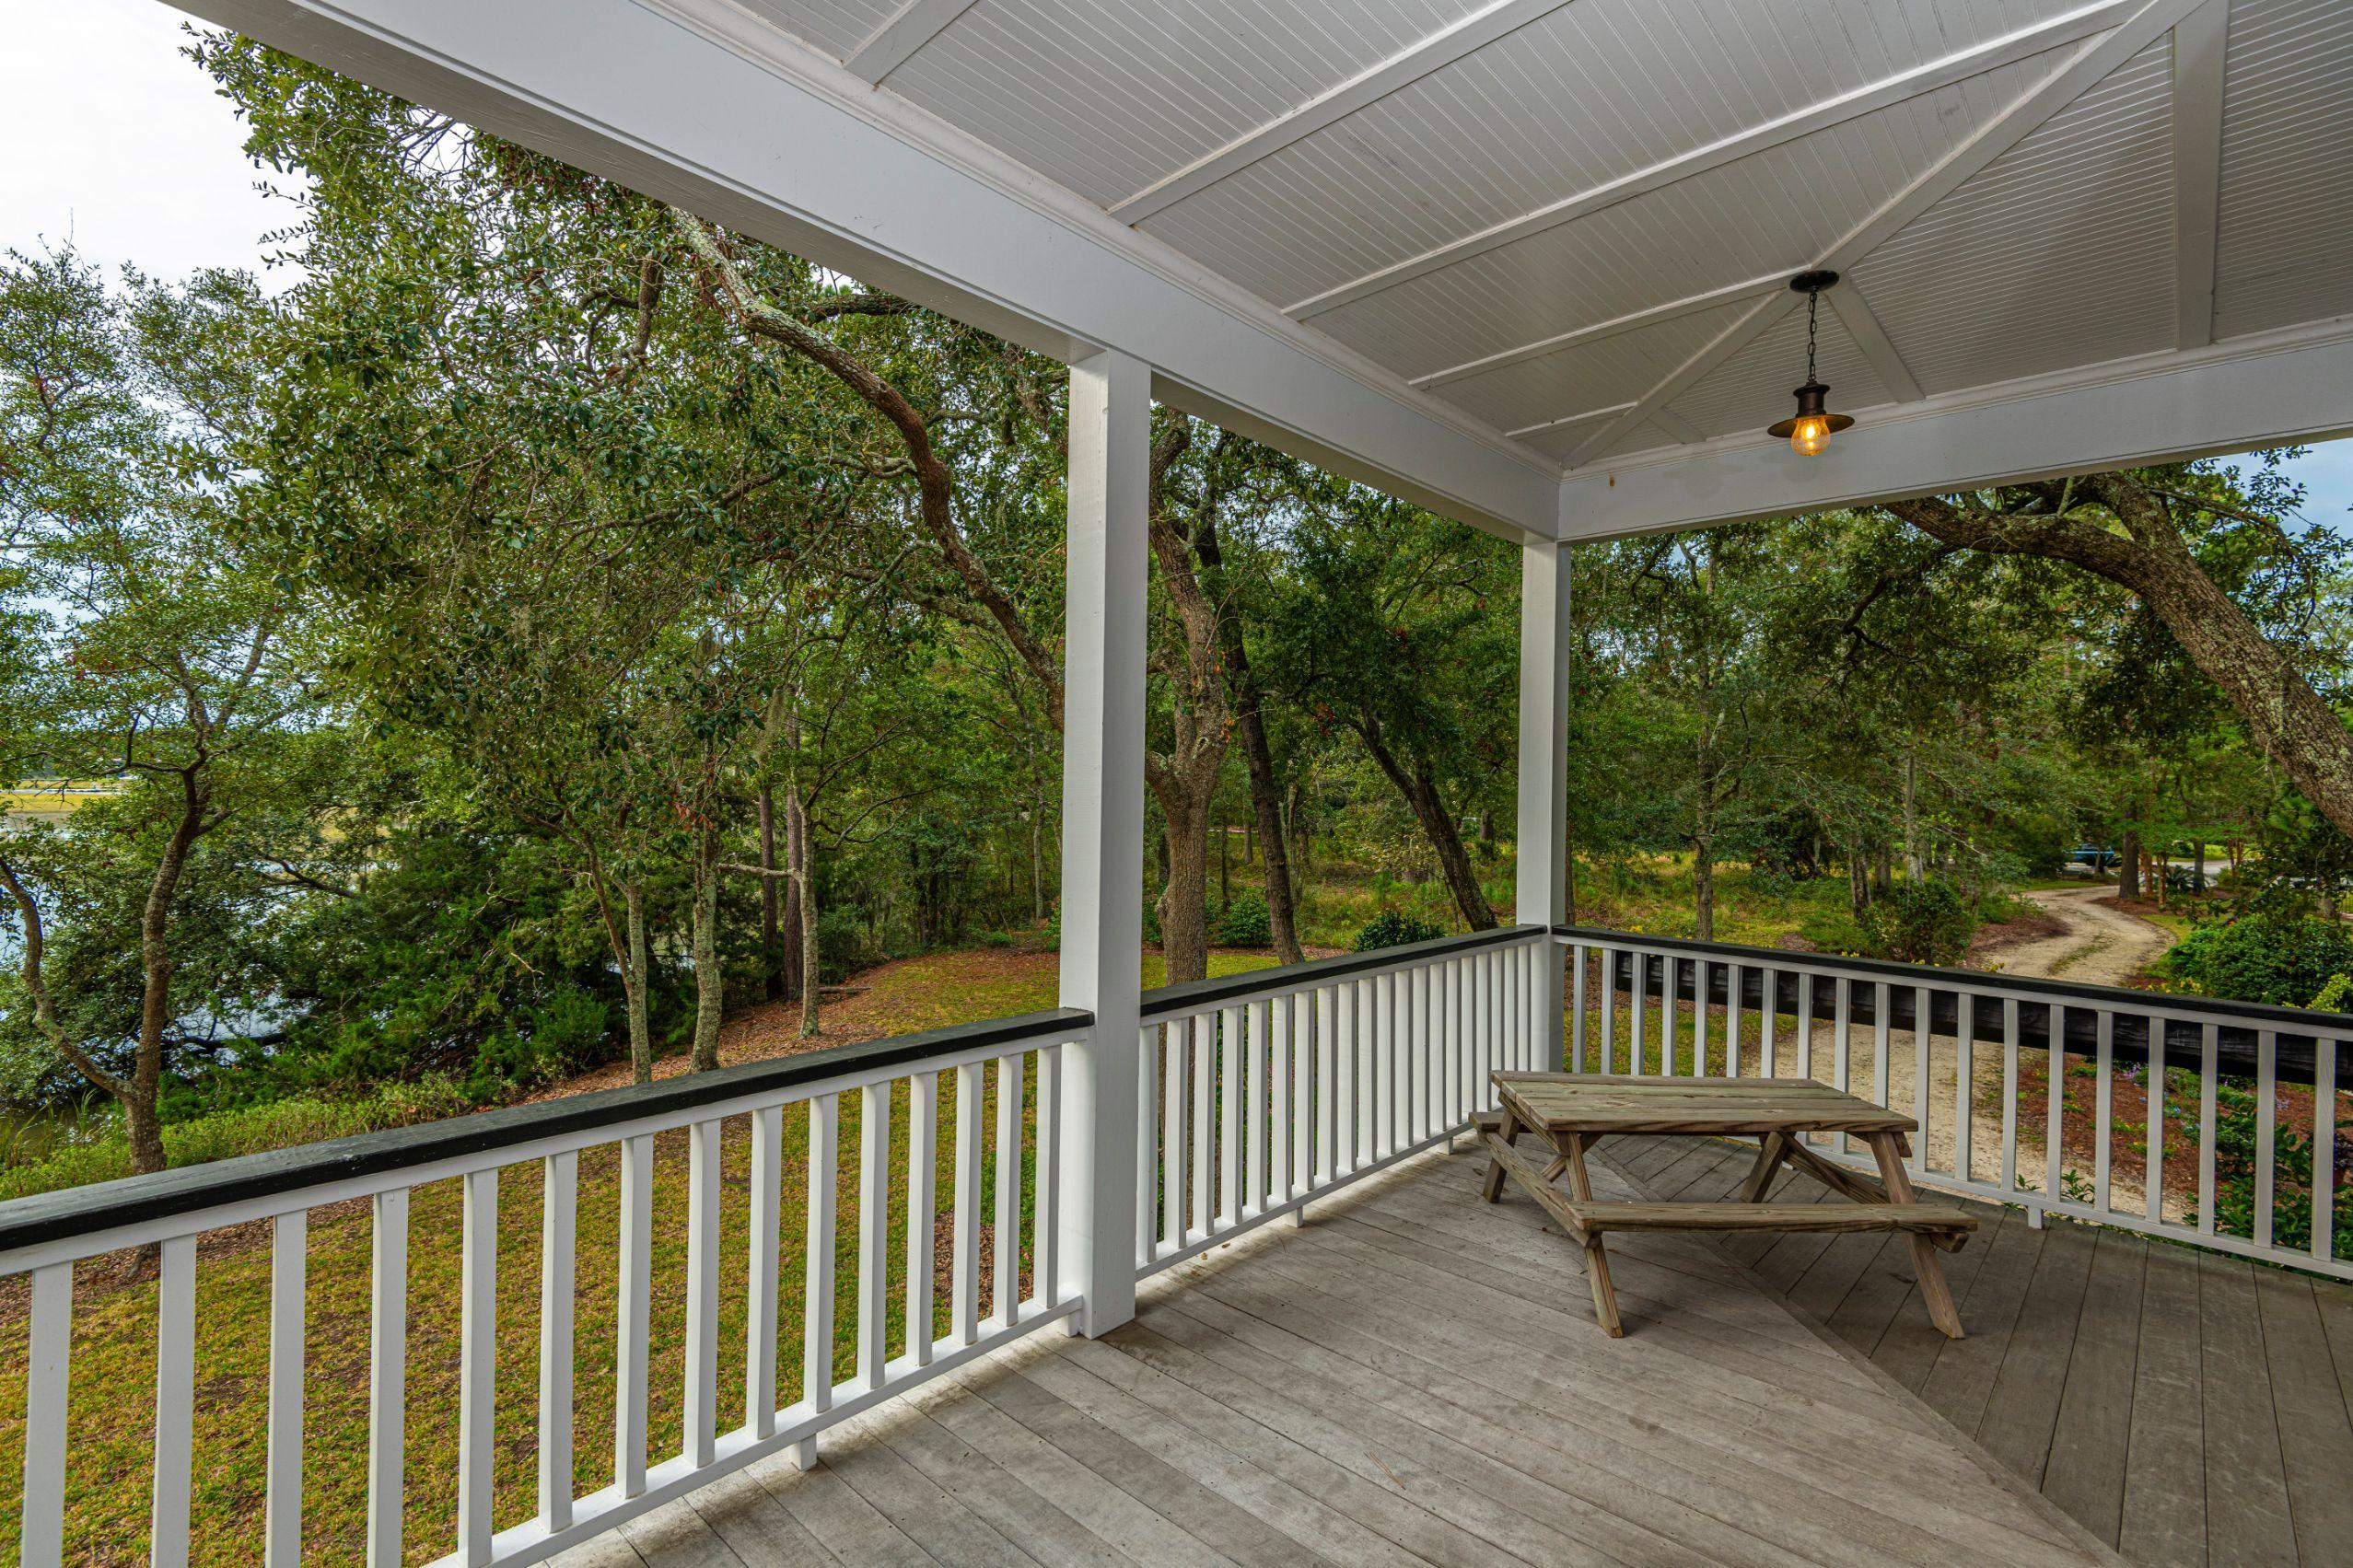 Ellis Oaks Homes For Sale - 712 Ellis Oak, Charleston, SC - 71